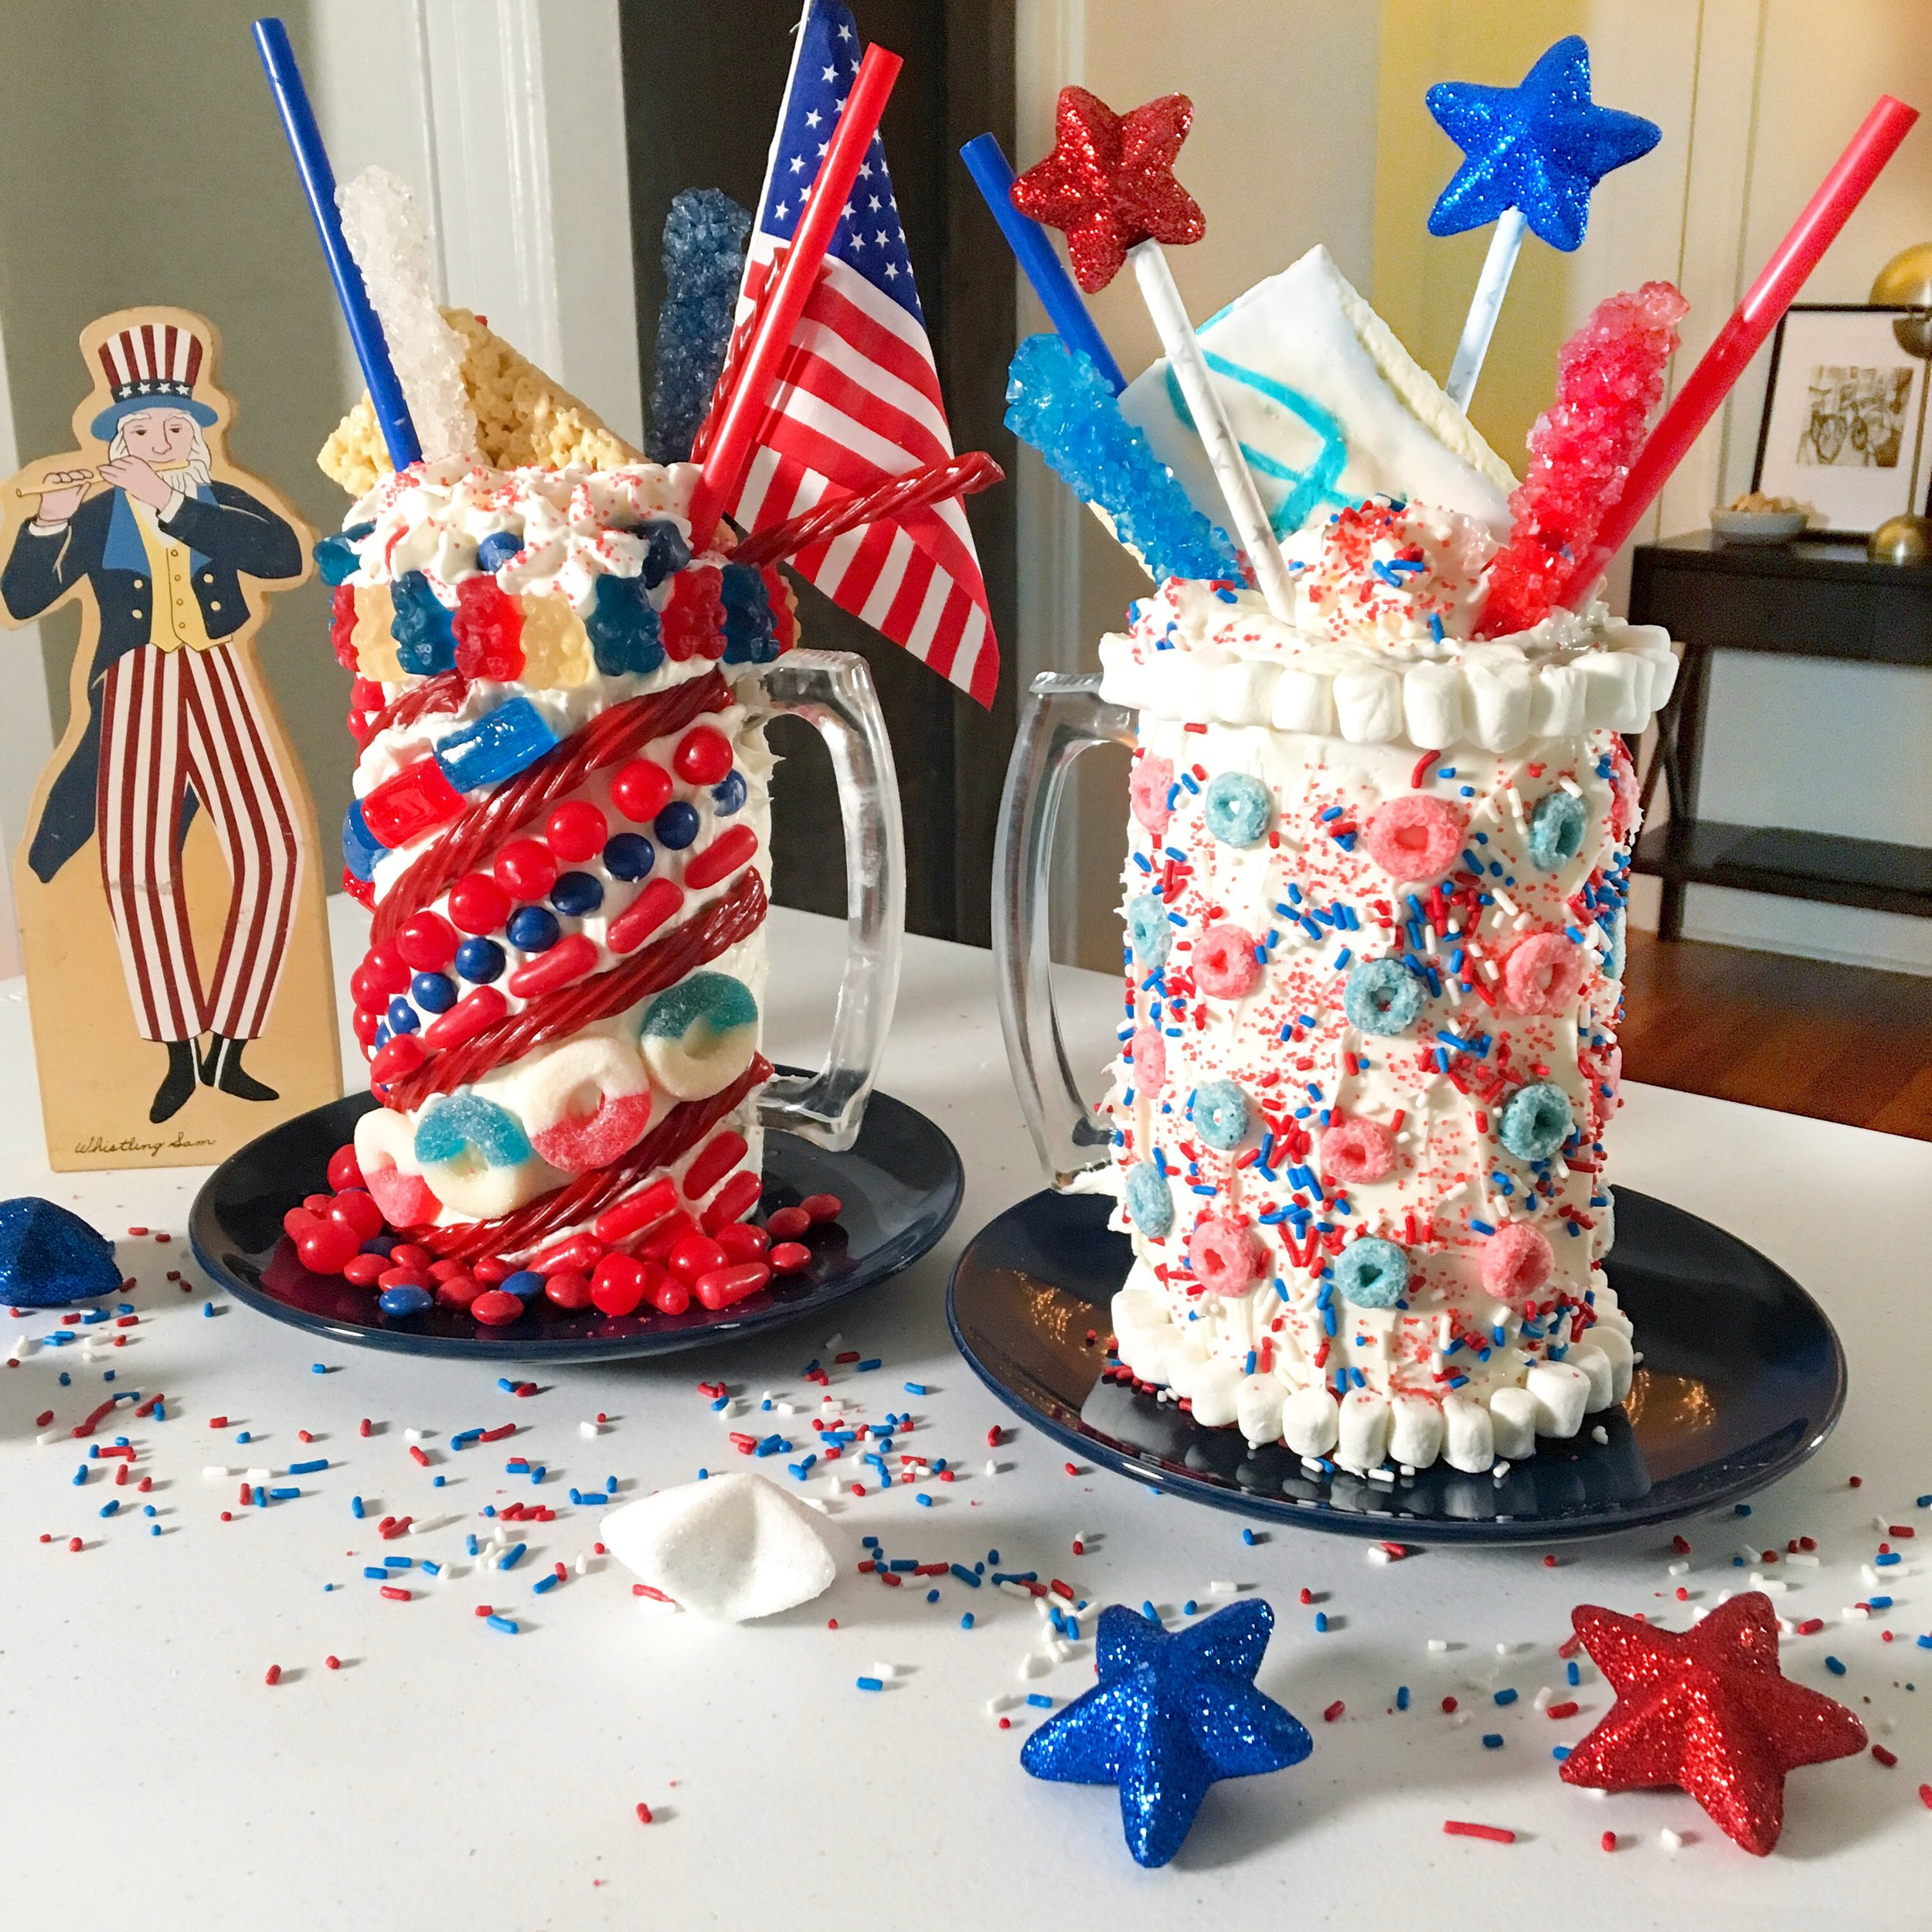 Extreme 4th of July Milkshakes #summer #icecream #milkshakes #frozen #fourthofjuly